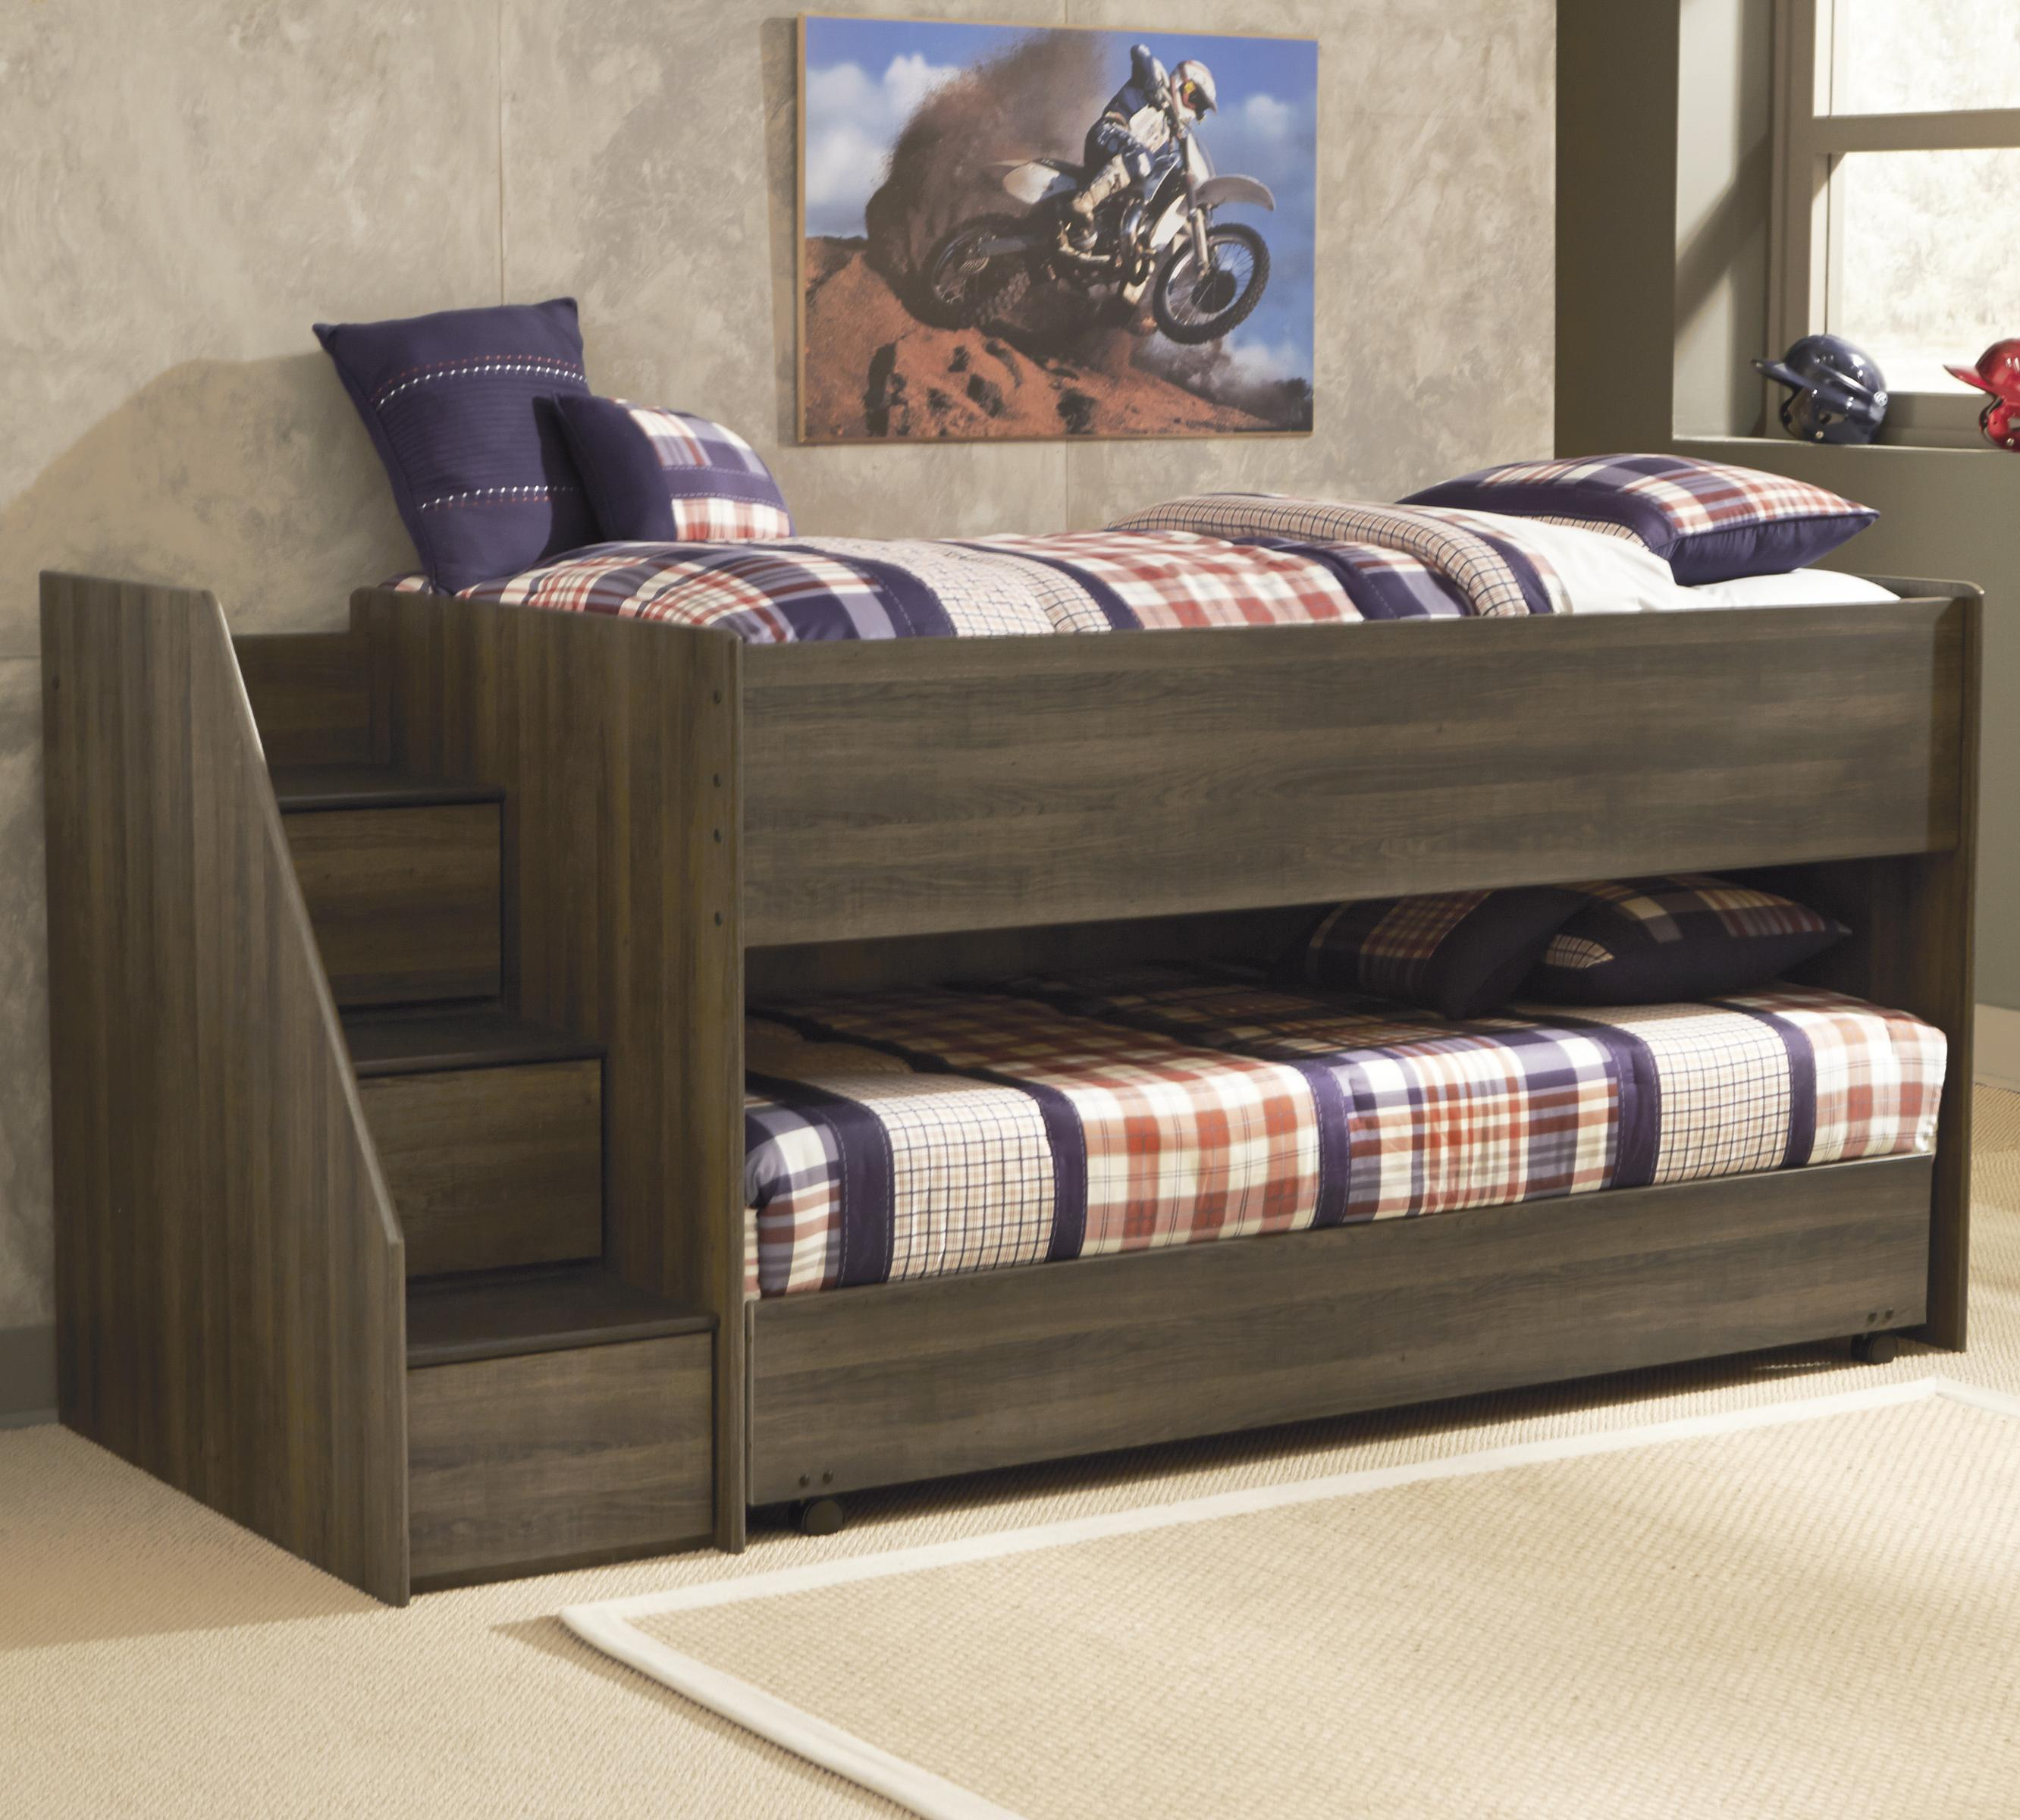 Signature Design by Ashley Juararo Twin Loft Bed w/ Left Steps & Caster Bed - Item Number: B251-68B+68T+13L+2xB100-11